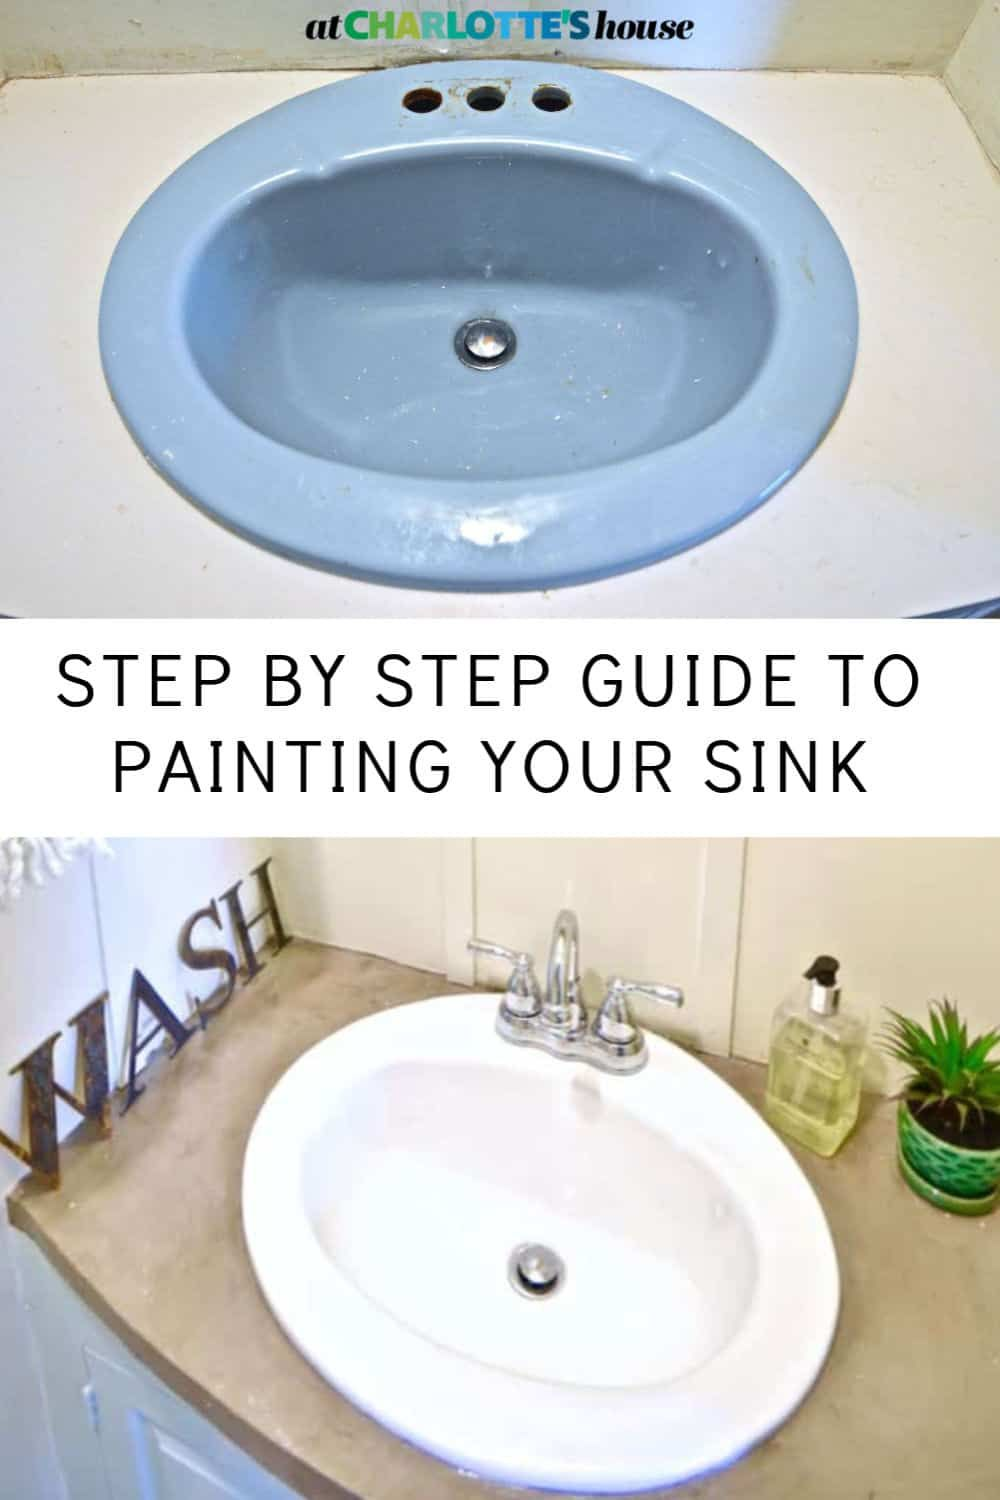 How To Paint A Sink In 2020 With Images Painting A Sink